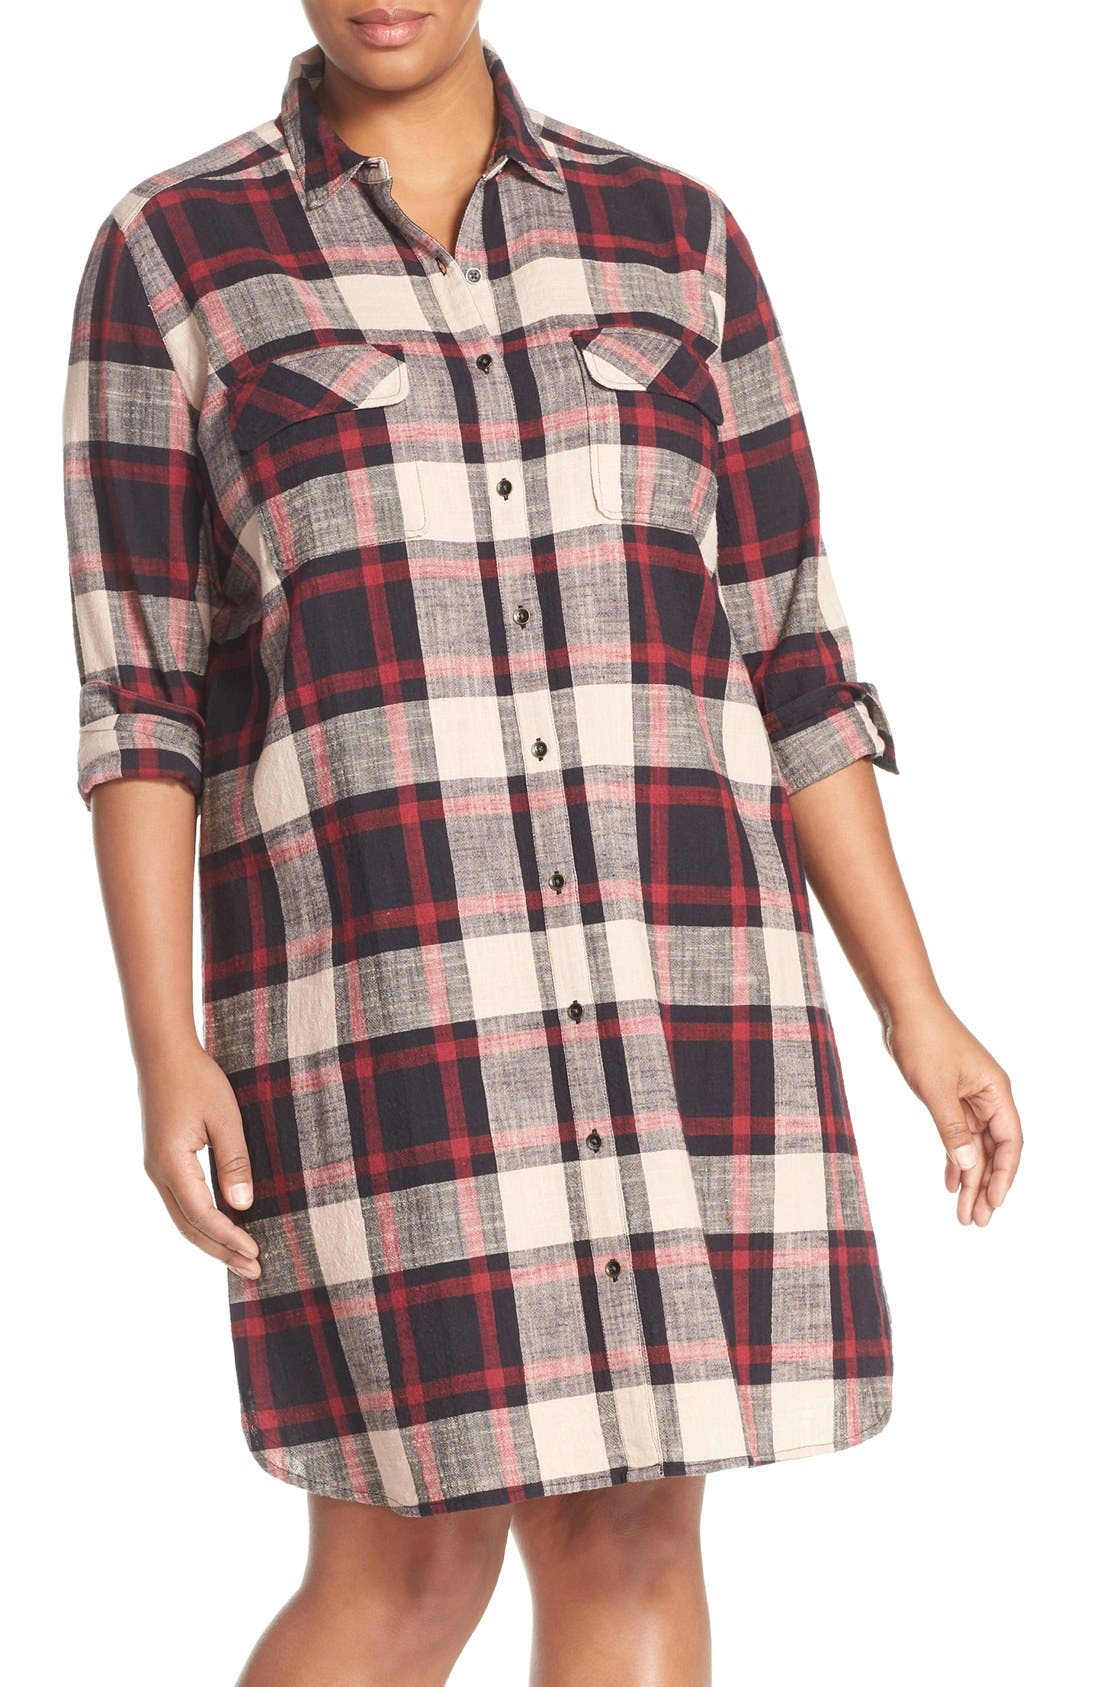 Alternate Image 1 Selected - Caslon® Two-Pocket Plaid Shirtdress (Plus Size)